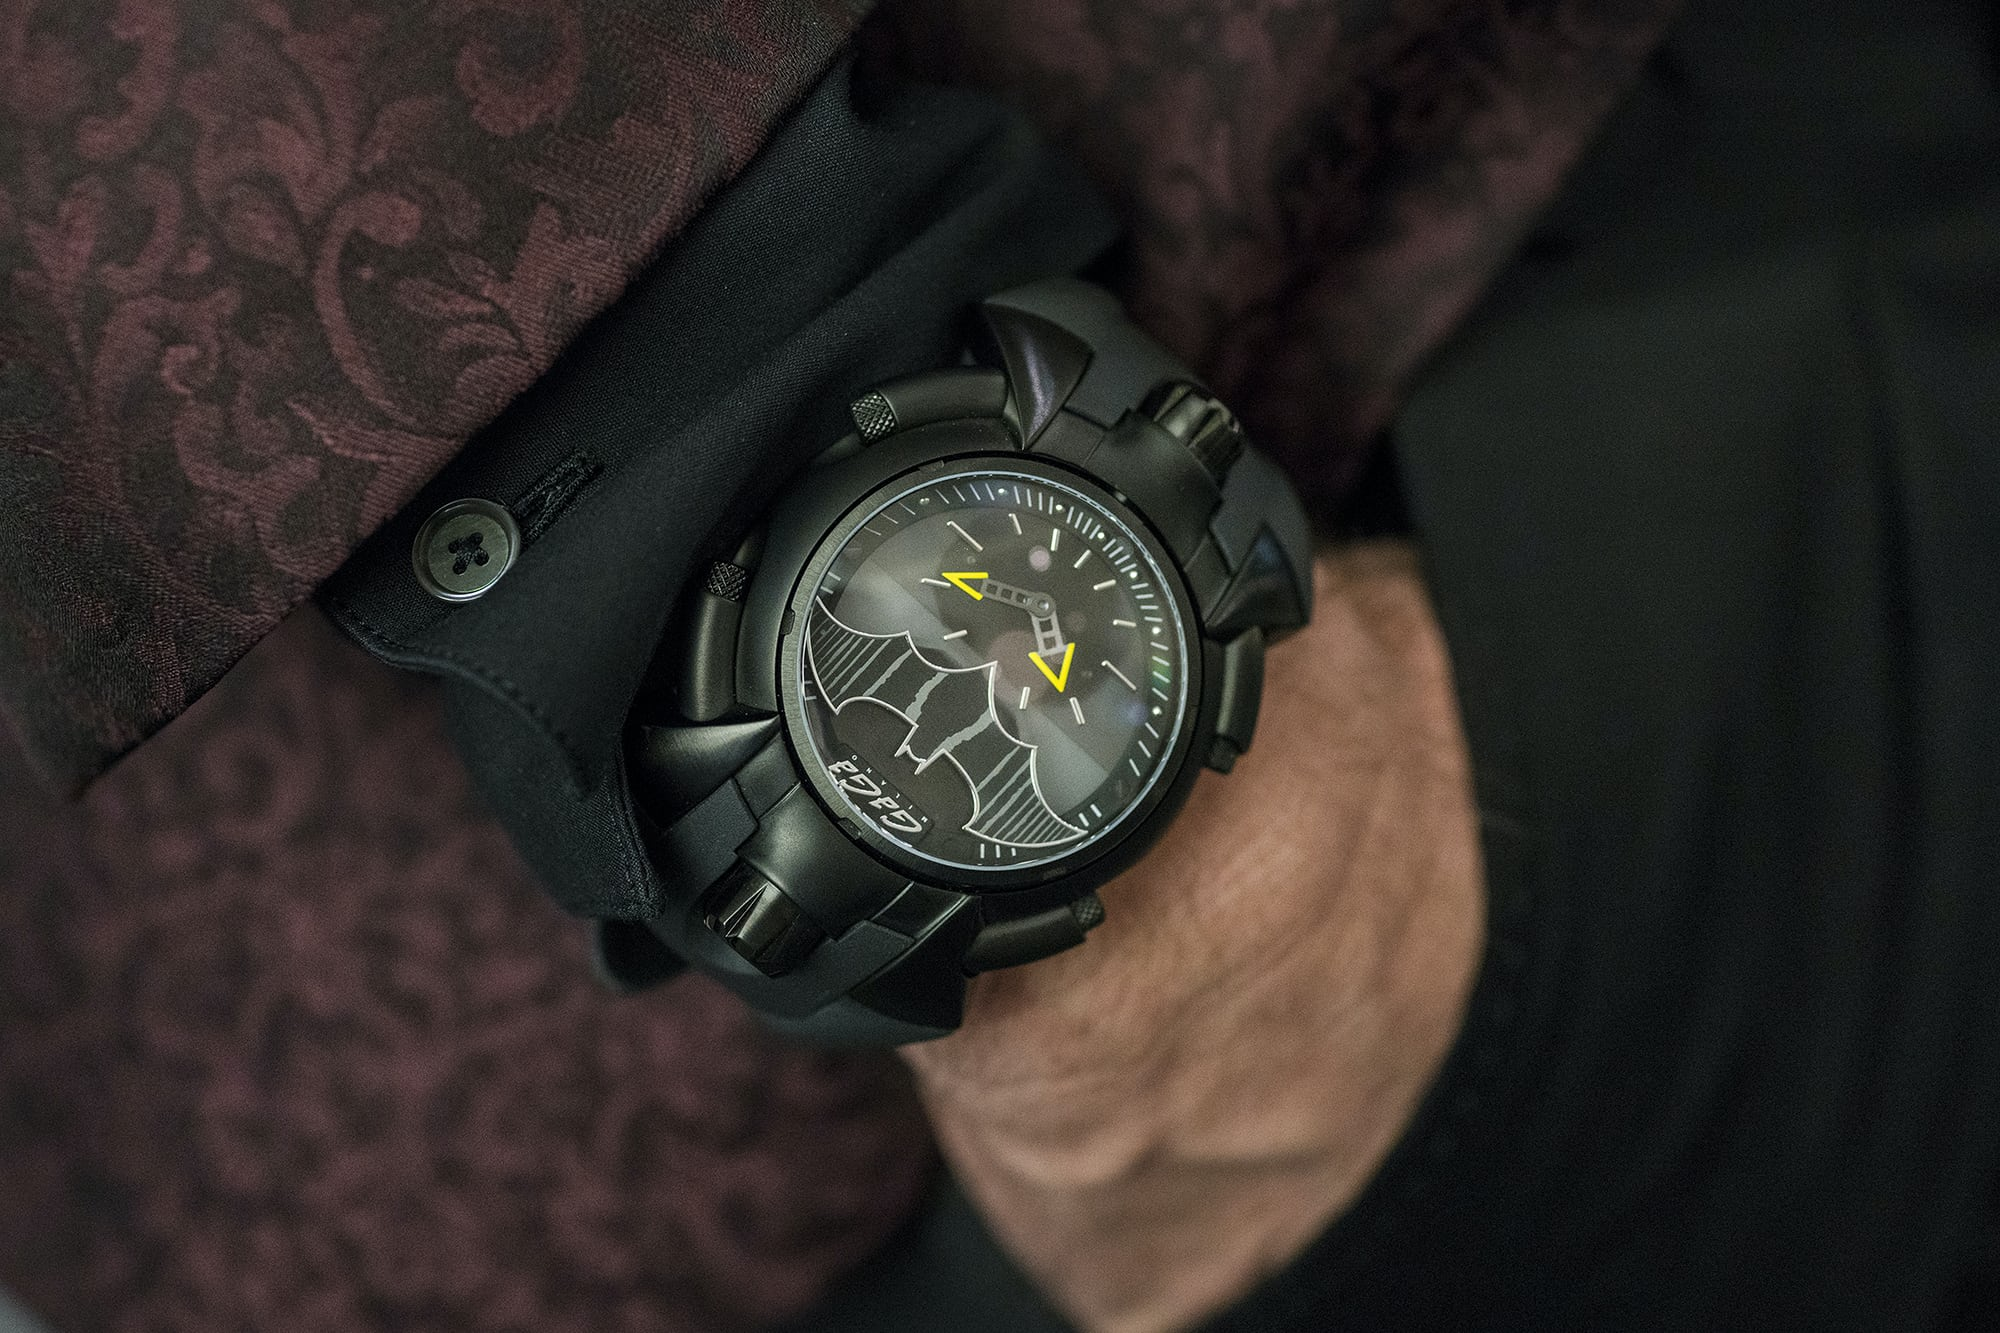 Photo Report: The Fashion And Watches Of Baselworld 2018 Photo Report: The Fashion And Watches Of Baselworld 2018 DSC00783 copy